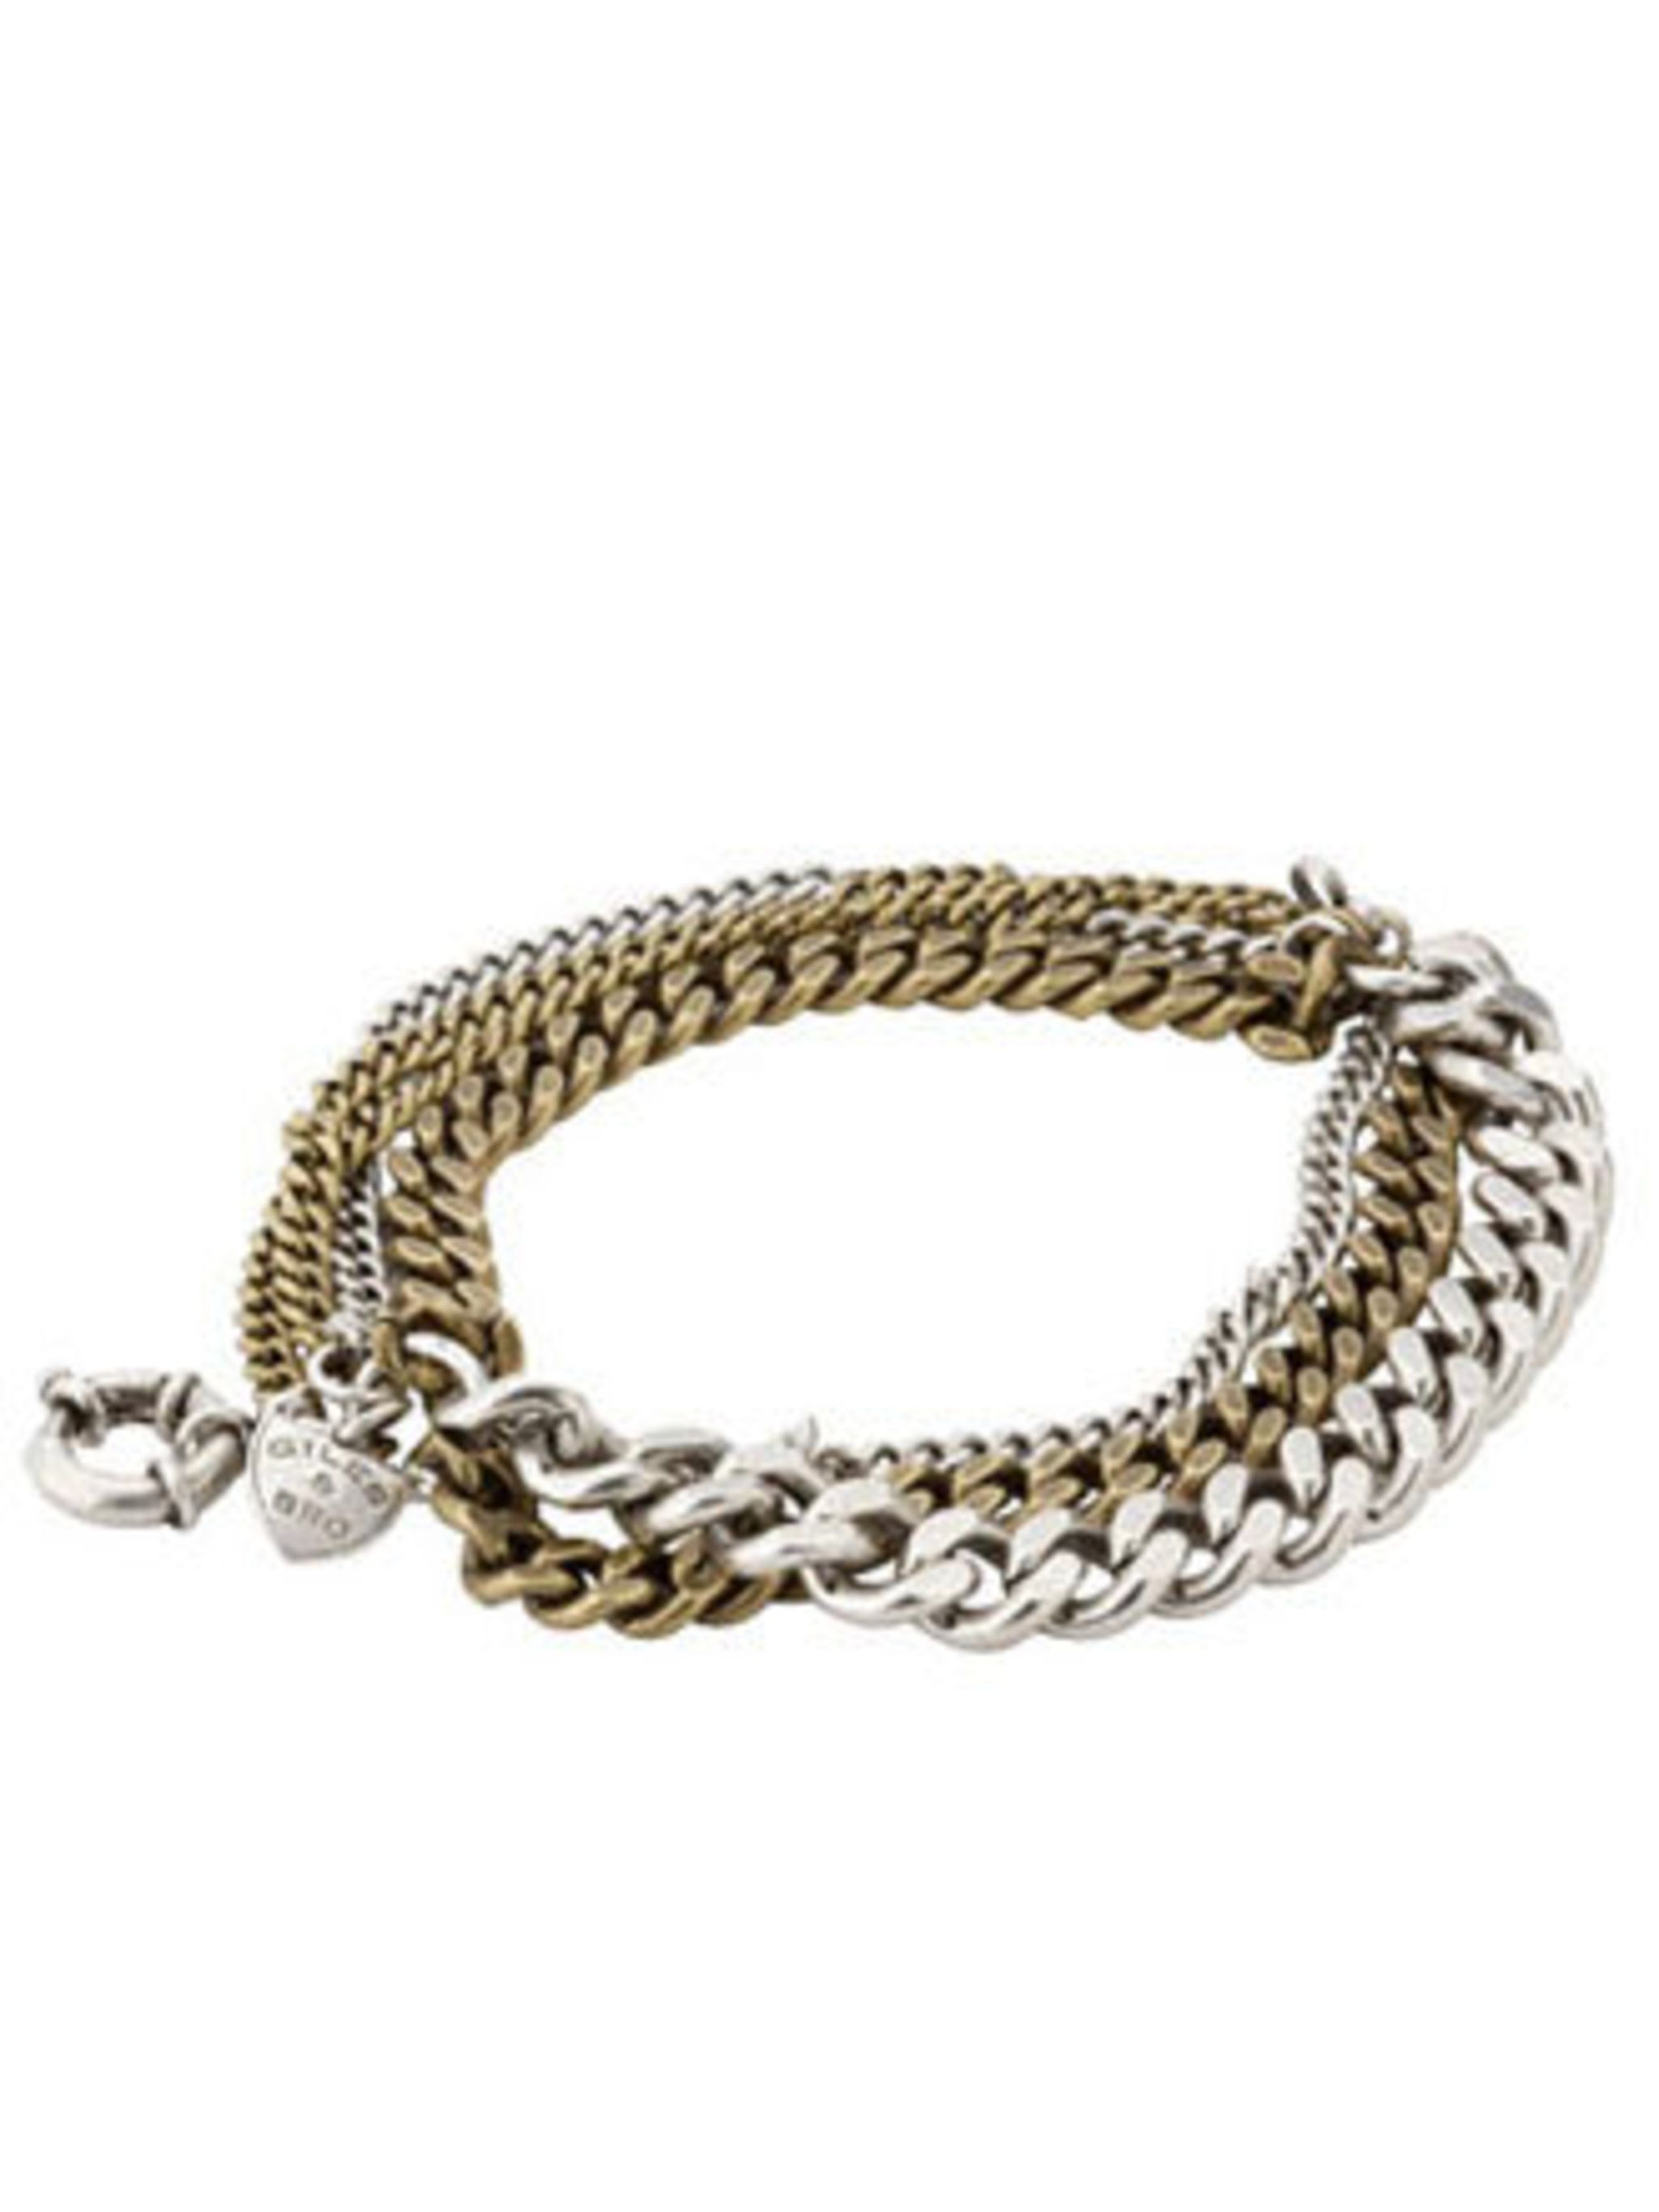 """<p>Toughen up a pretty wardrobe with edgy accessories. This Giles & Brother chain bracelet will do just that.</p><p>Bracelet, £105 by <a href=""""http://www.liberty.co.uk/fcp/product/Liberty/Jewellery/Bronze-Multi-Chain-Bracelet,--Giles-And-Brother/41720"""